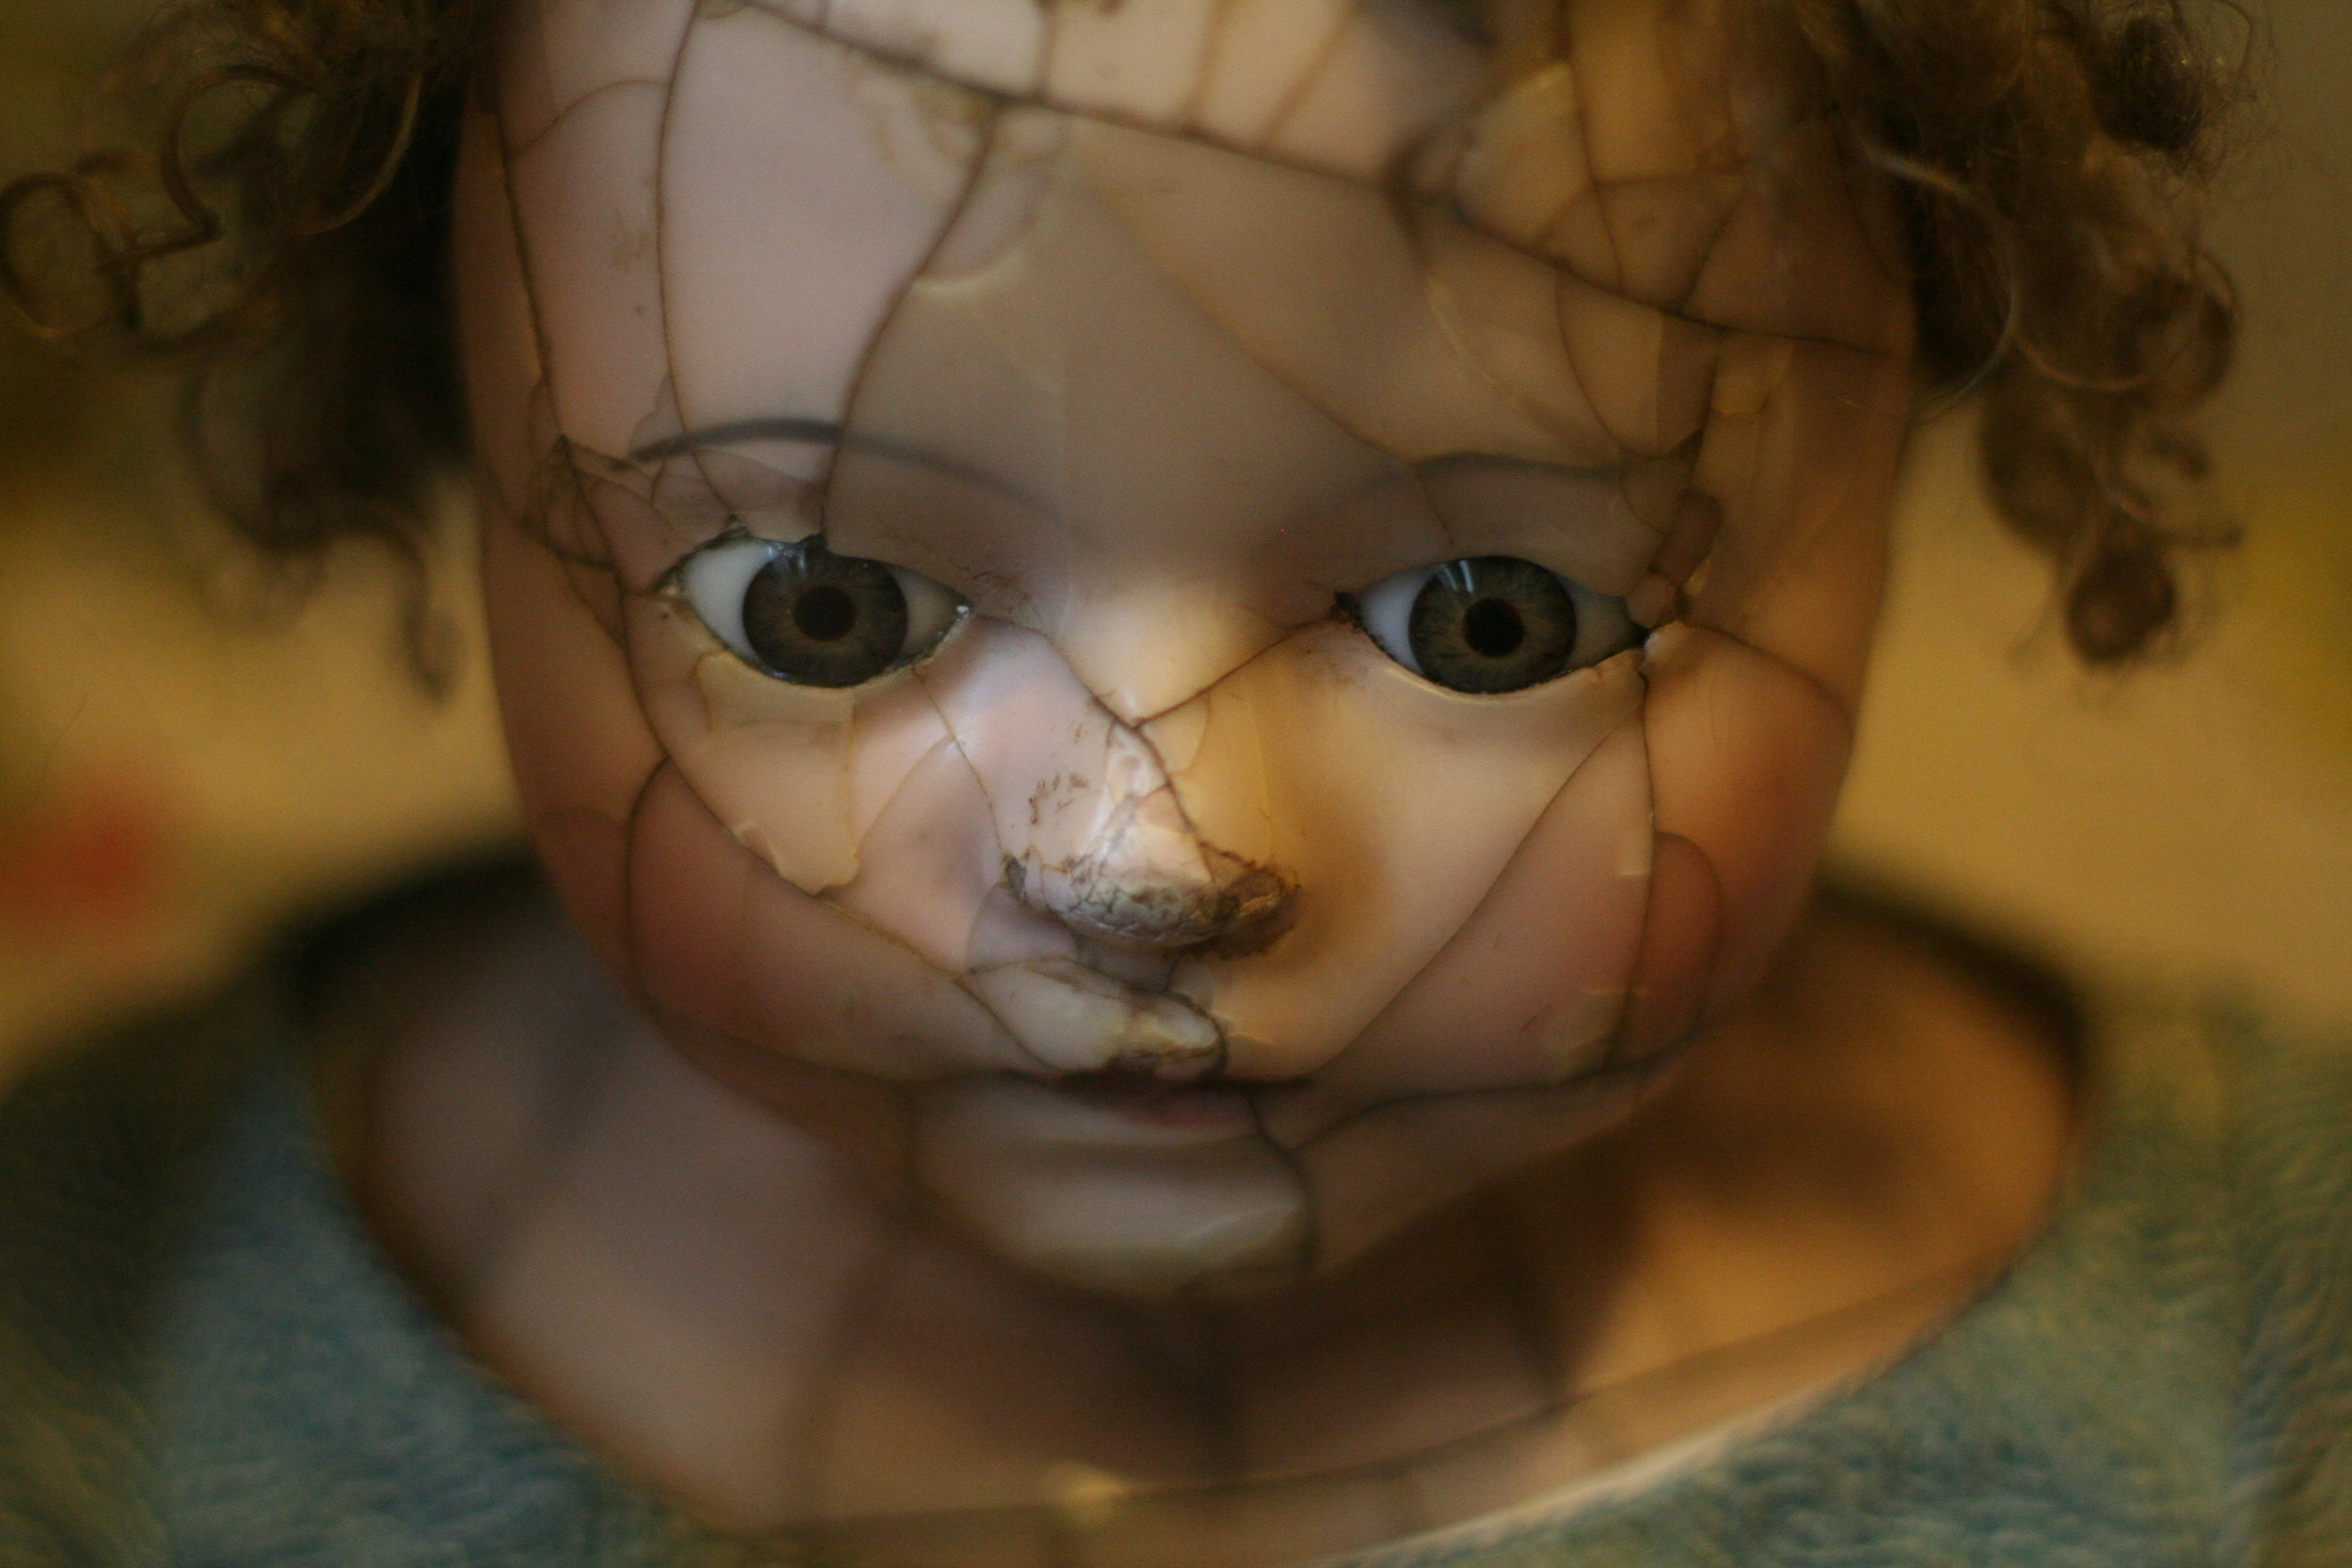 broken doll symbolizing broken woman